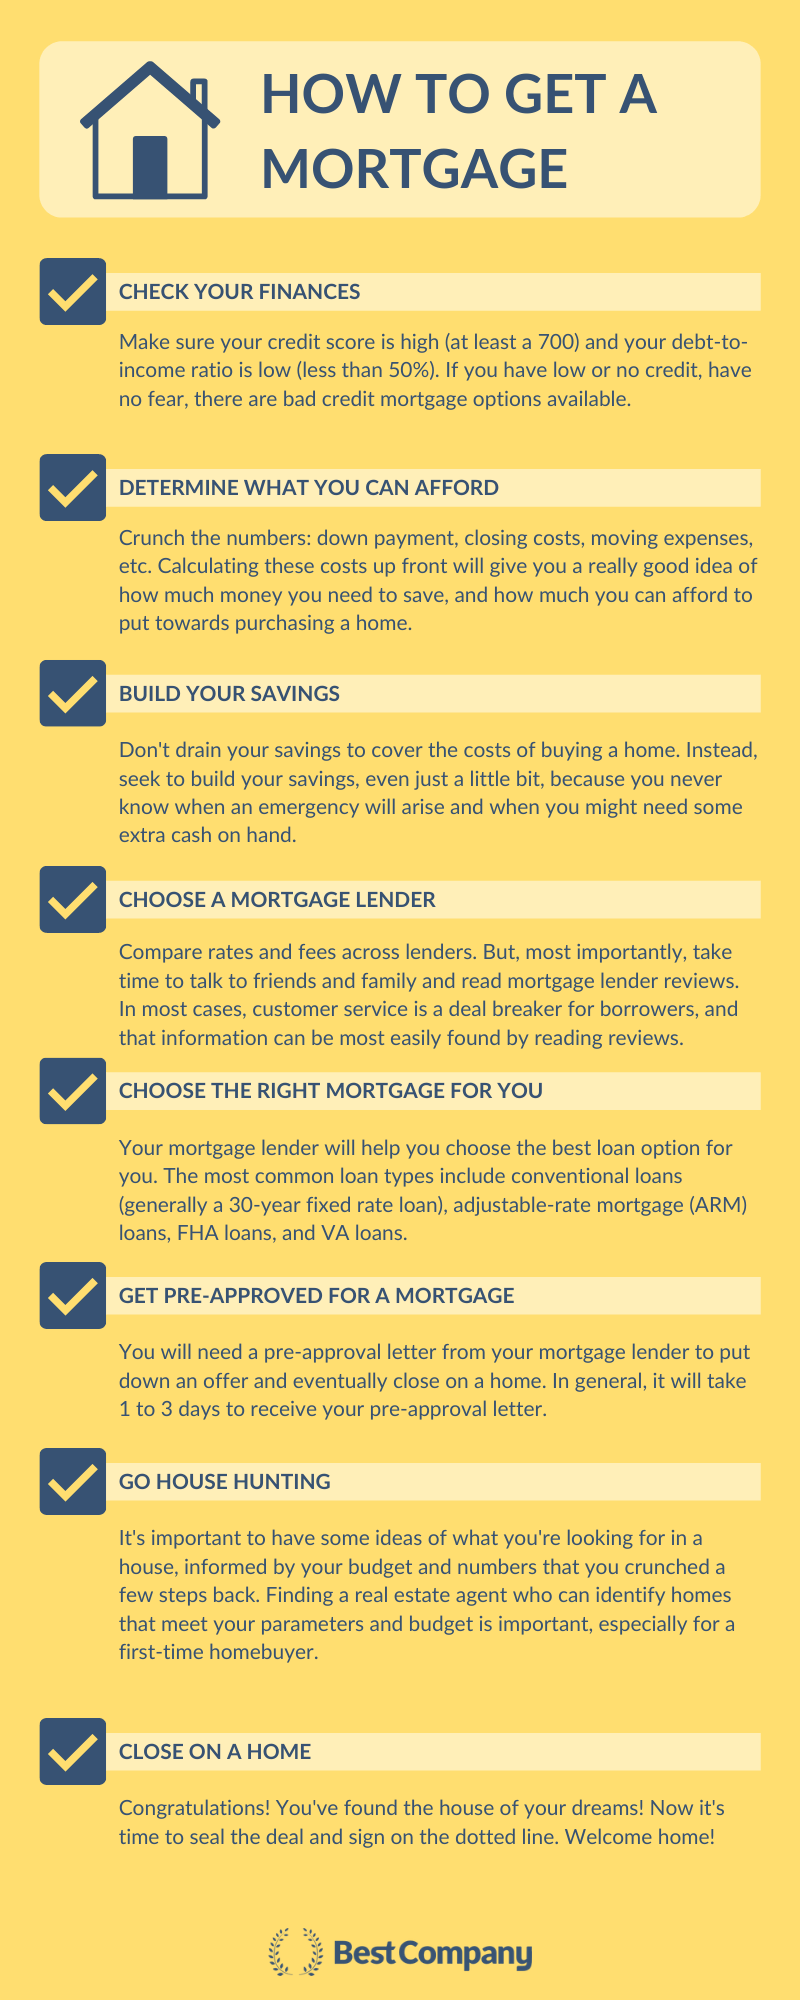 Infographic outlining the steps for getting a mortgage